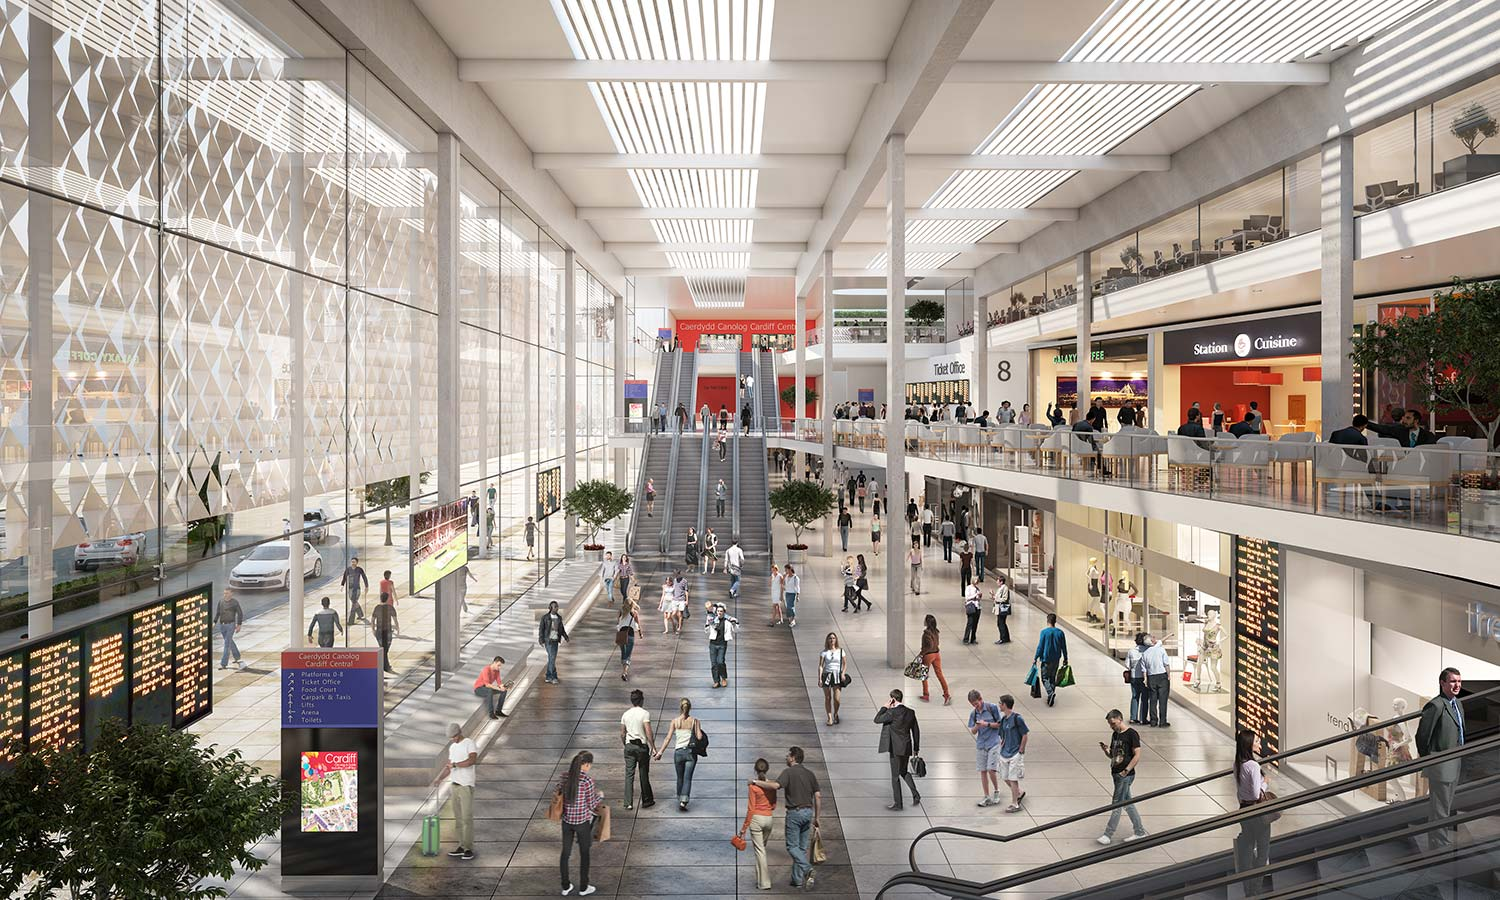 Inside of Train Station 3D Architectural Visualisation CGI